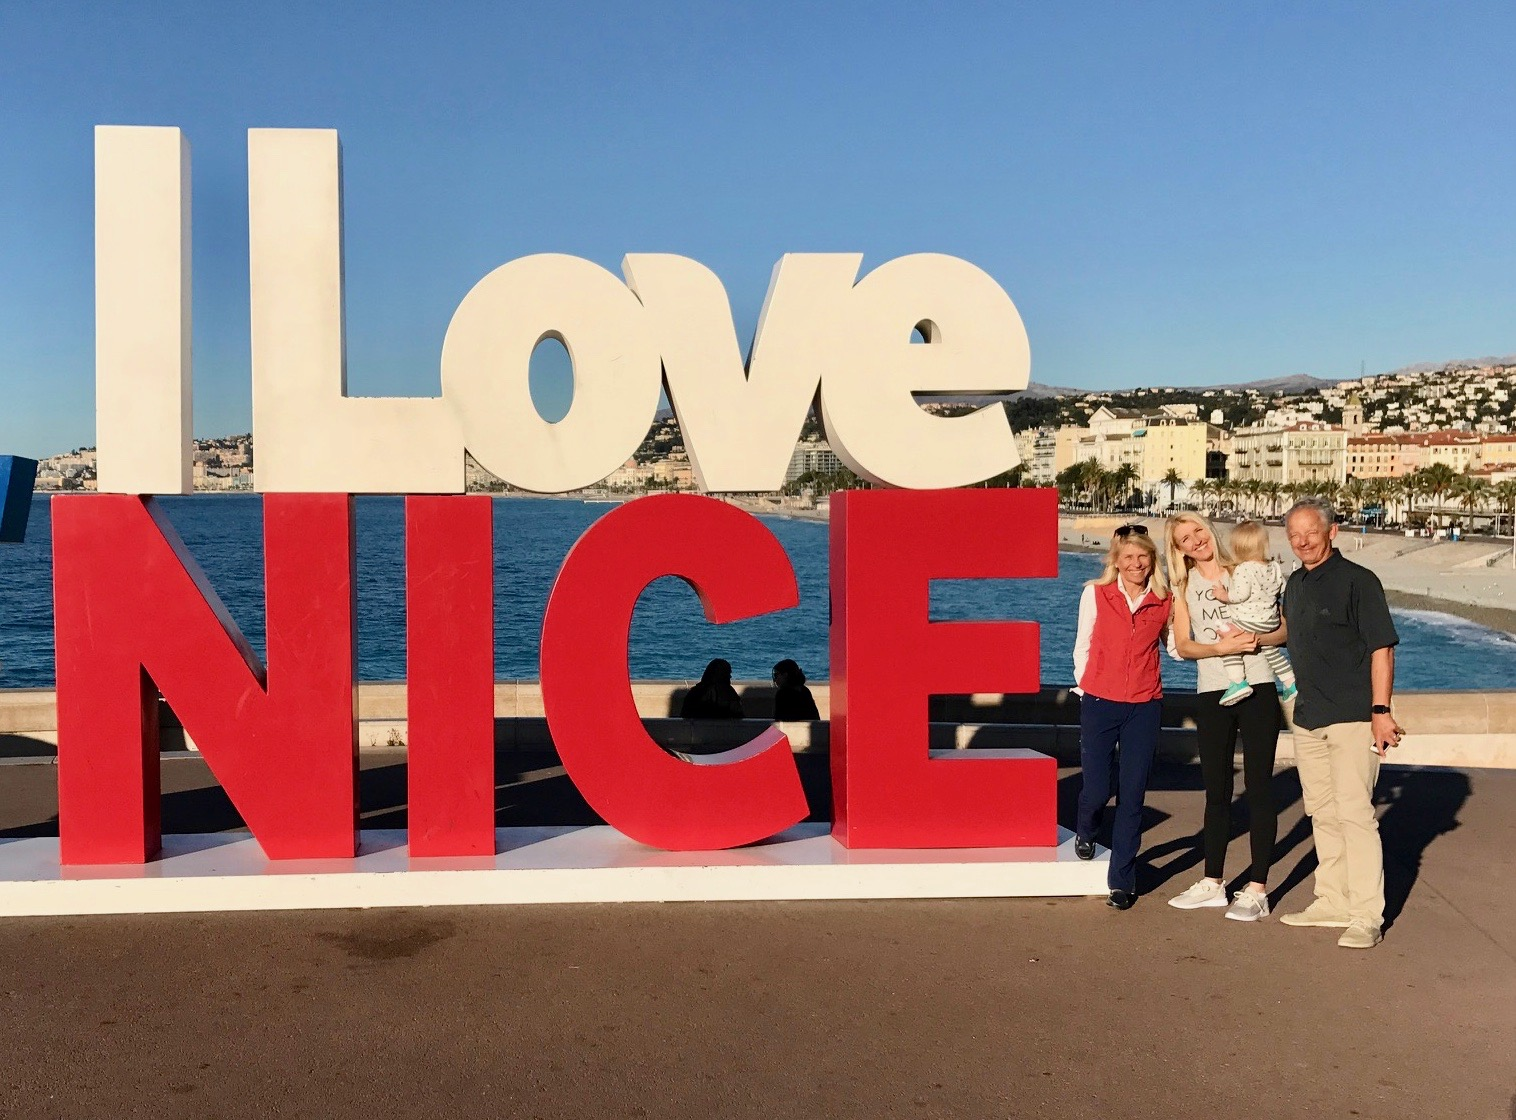 Our last night in Nice!